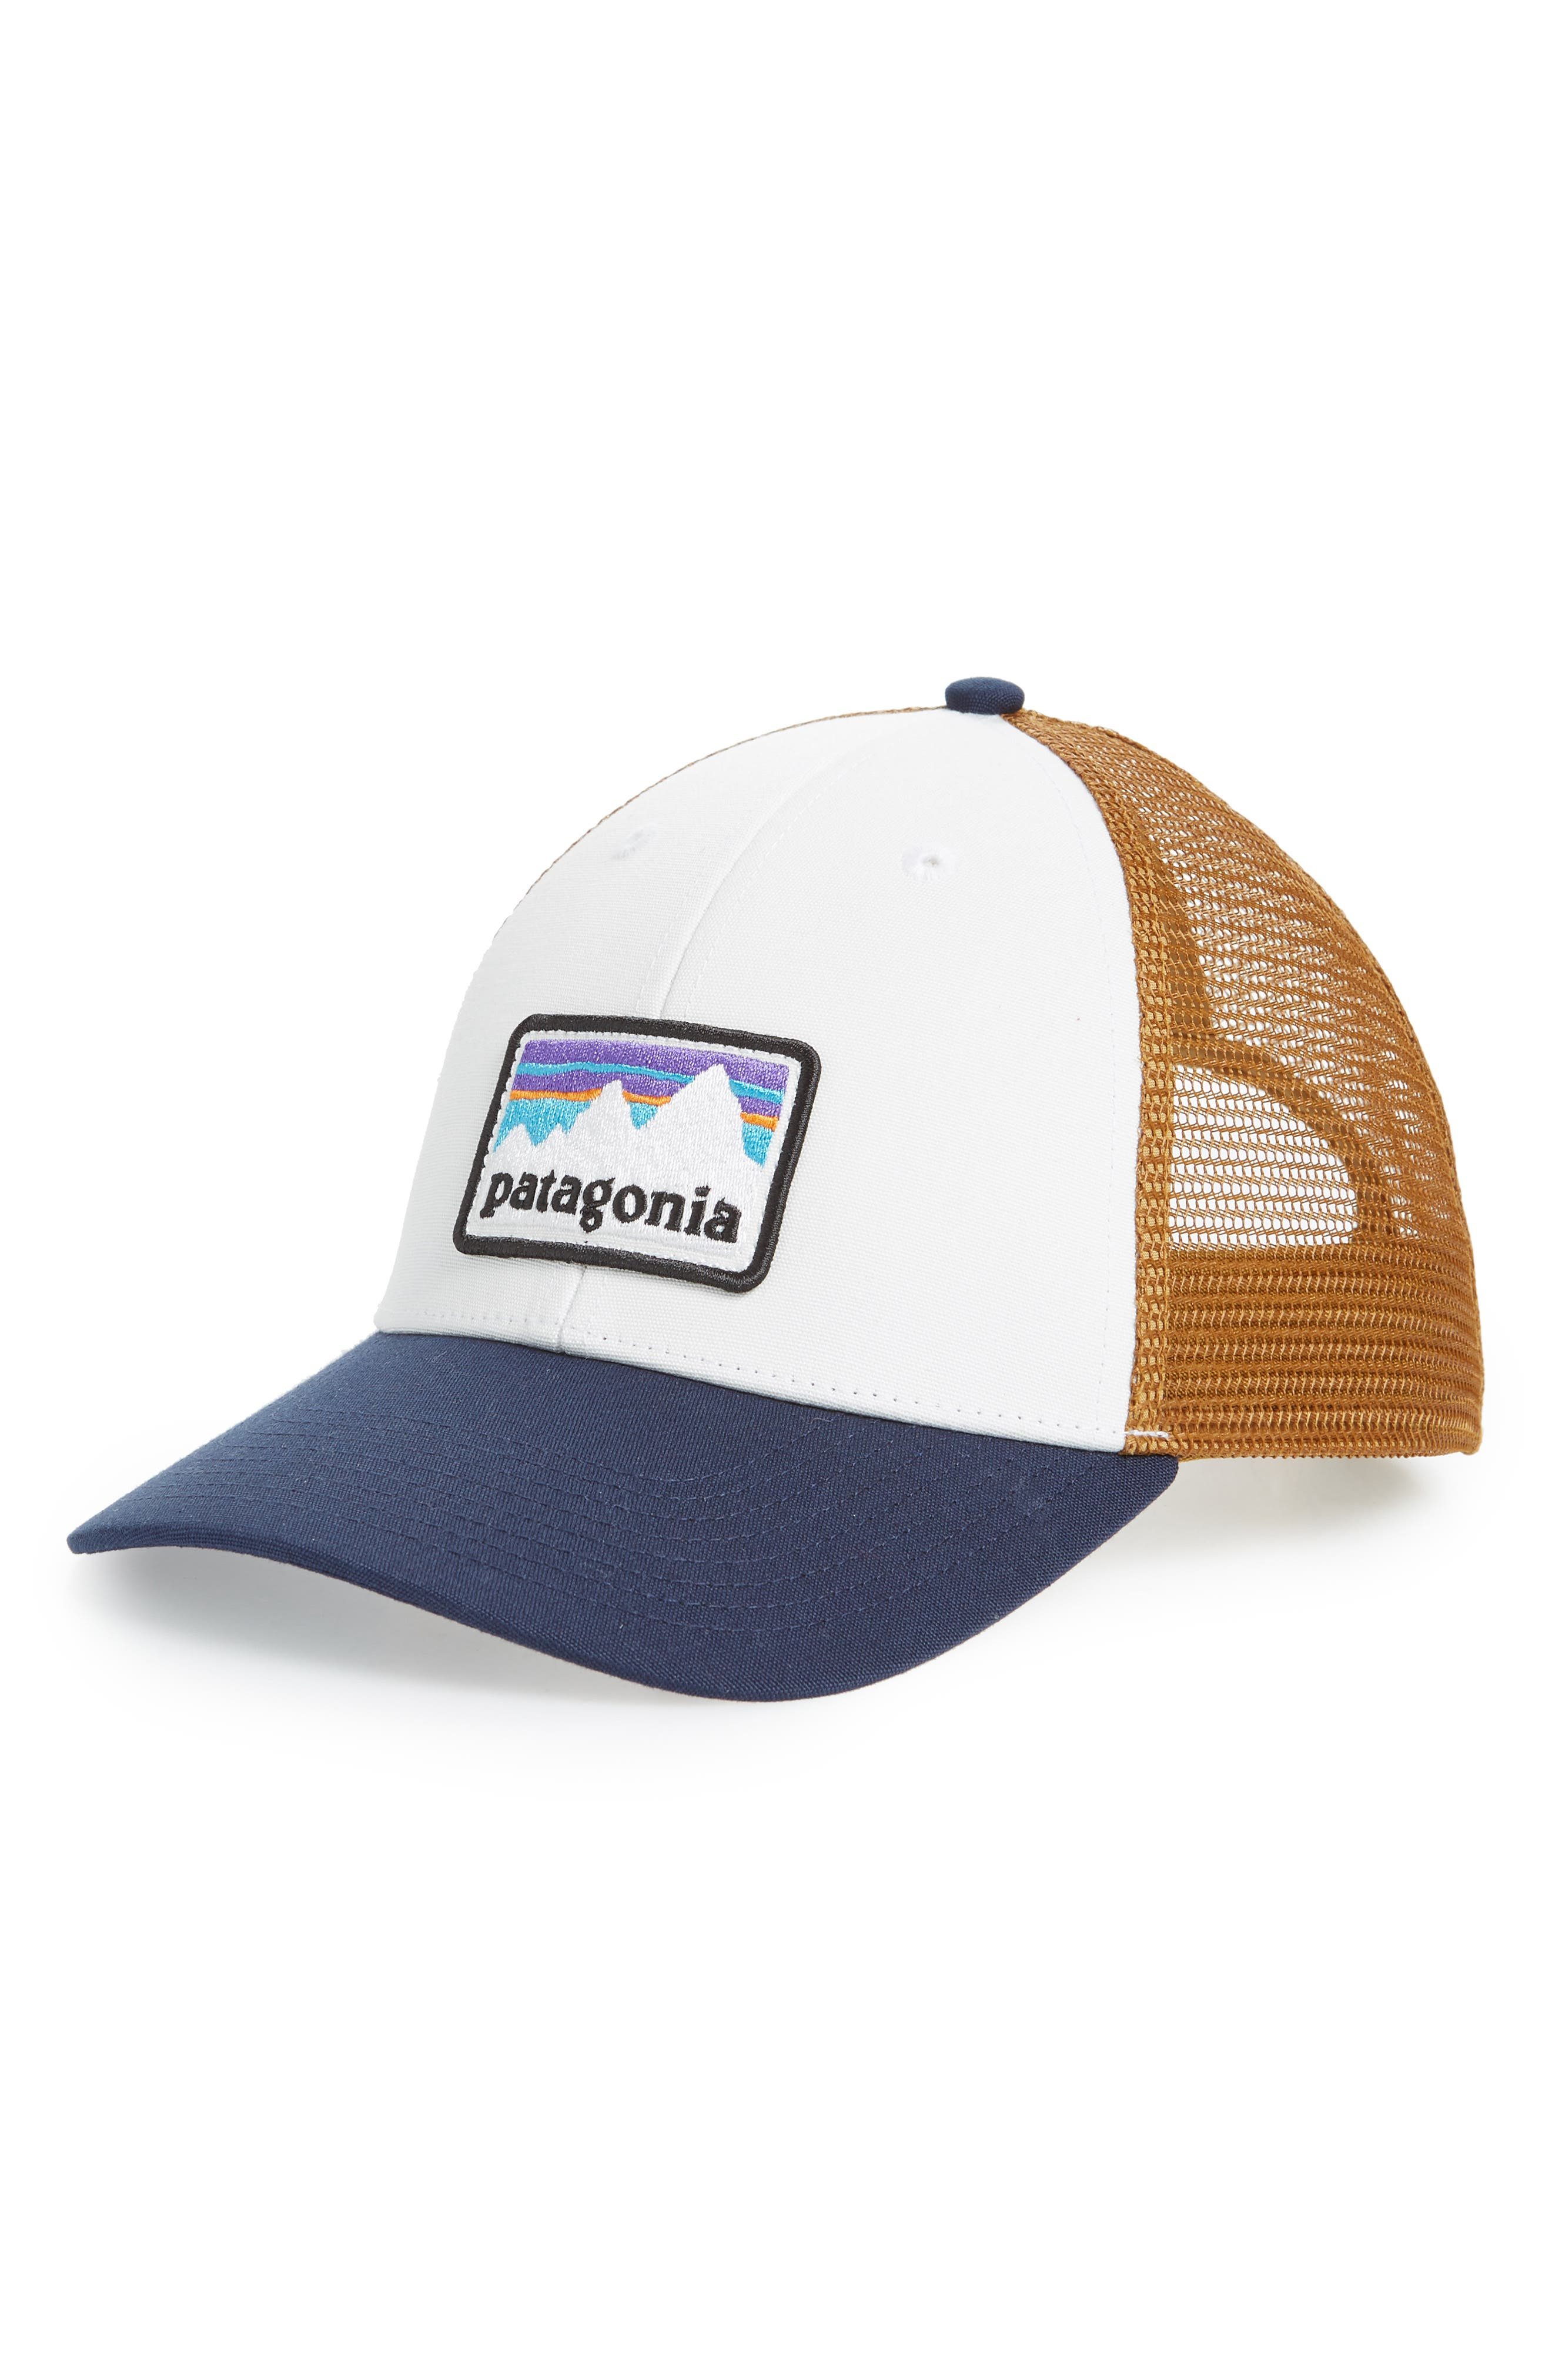 Shop Sticker Trucker Hat,                         Main,                         color, WHITE WITH CLASSIC NAVY